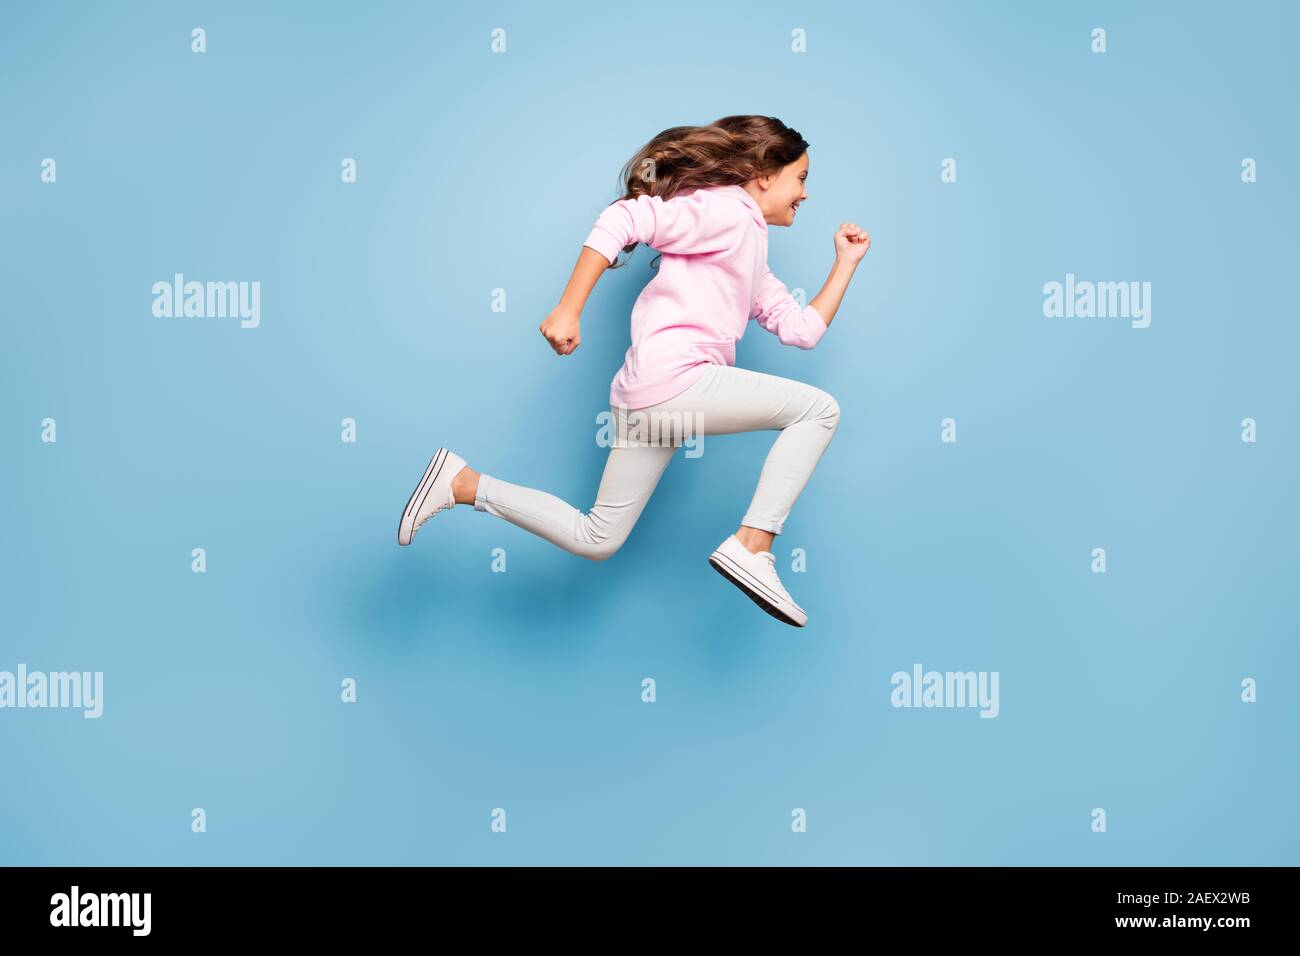 Full length body size photo of cheerful side profile positive crazy excited casual preteen wearing pink pants trousers footwear hurrying for discount Stock Photo